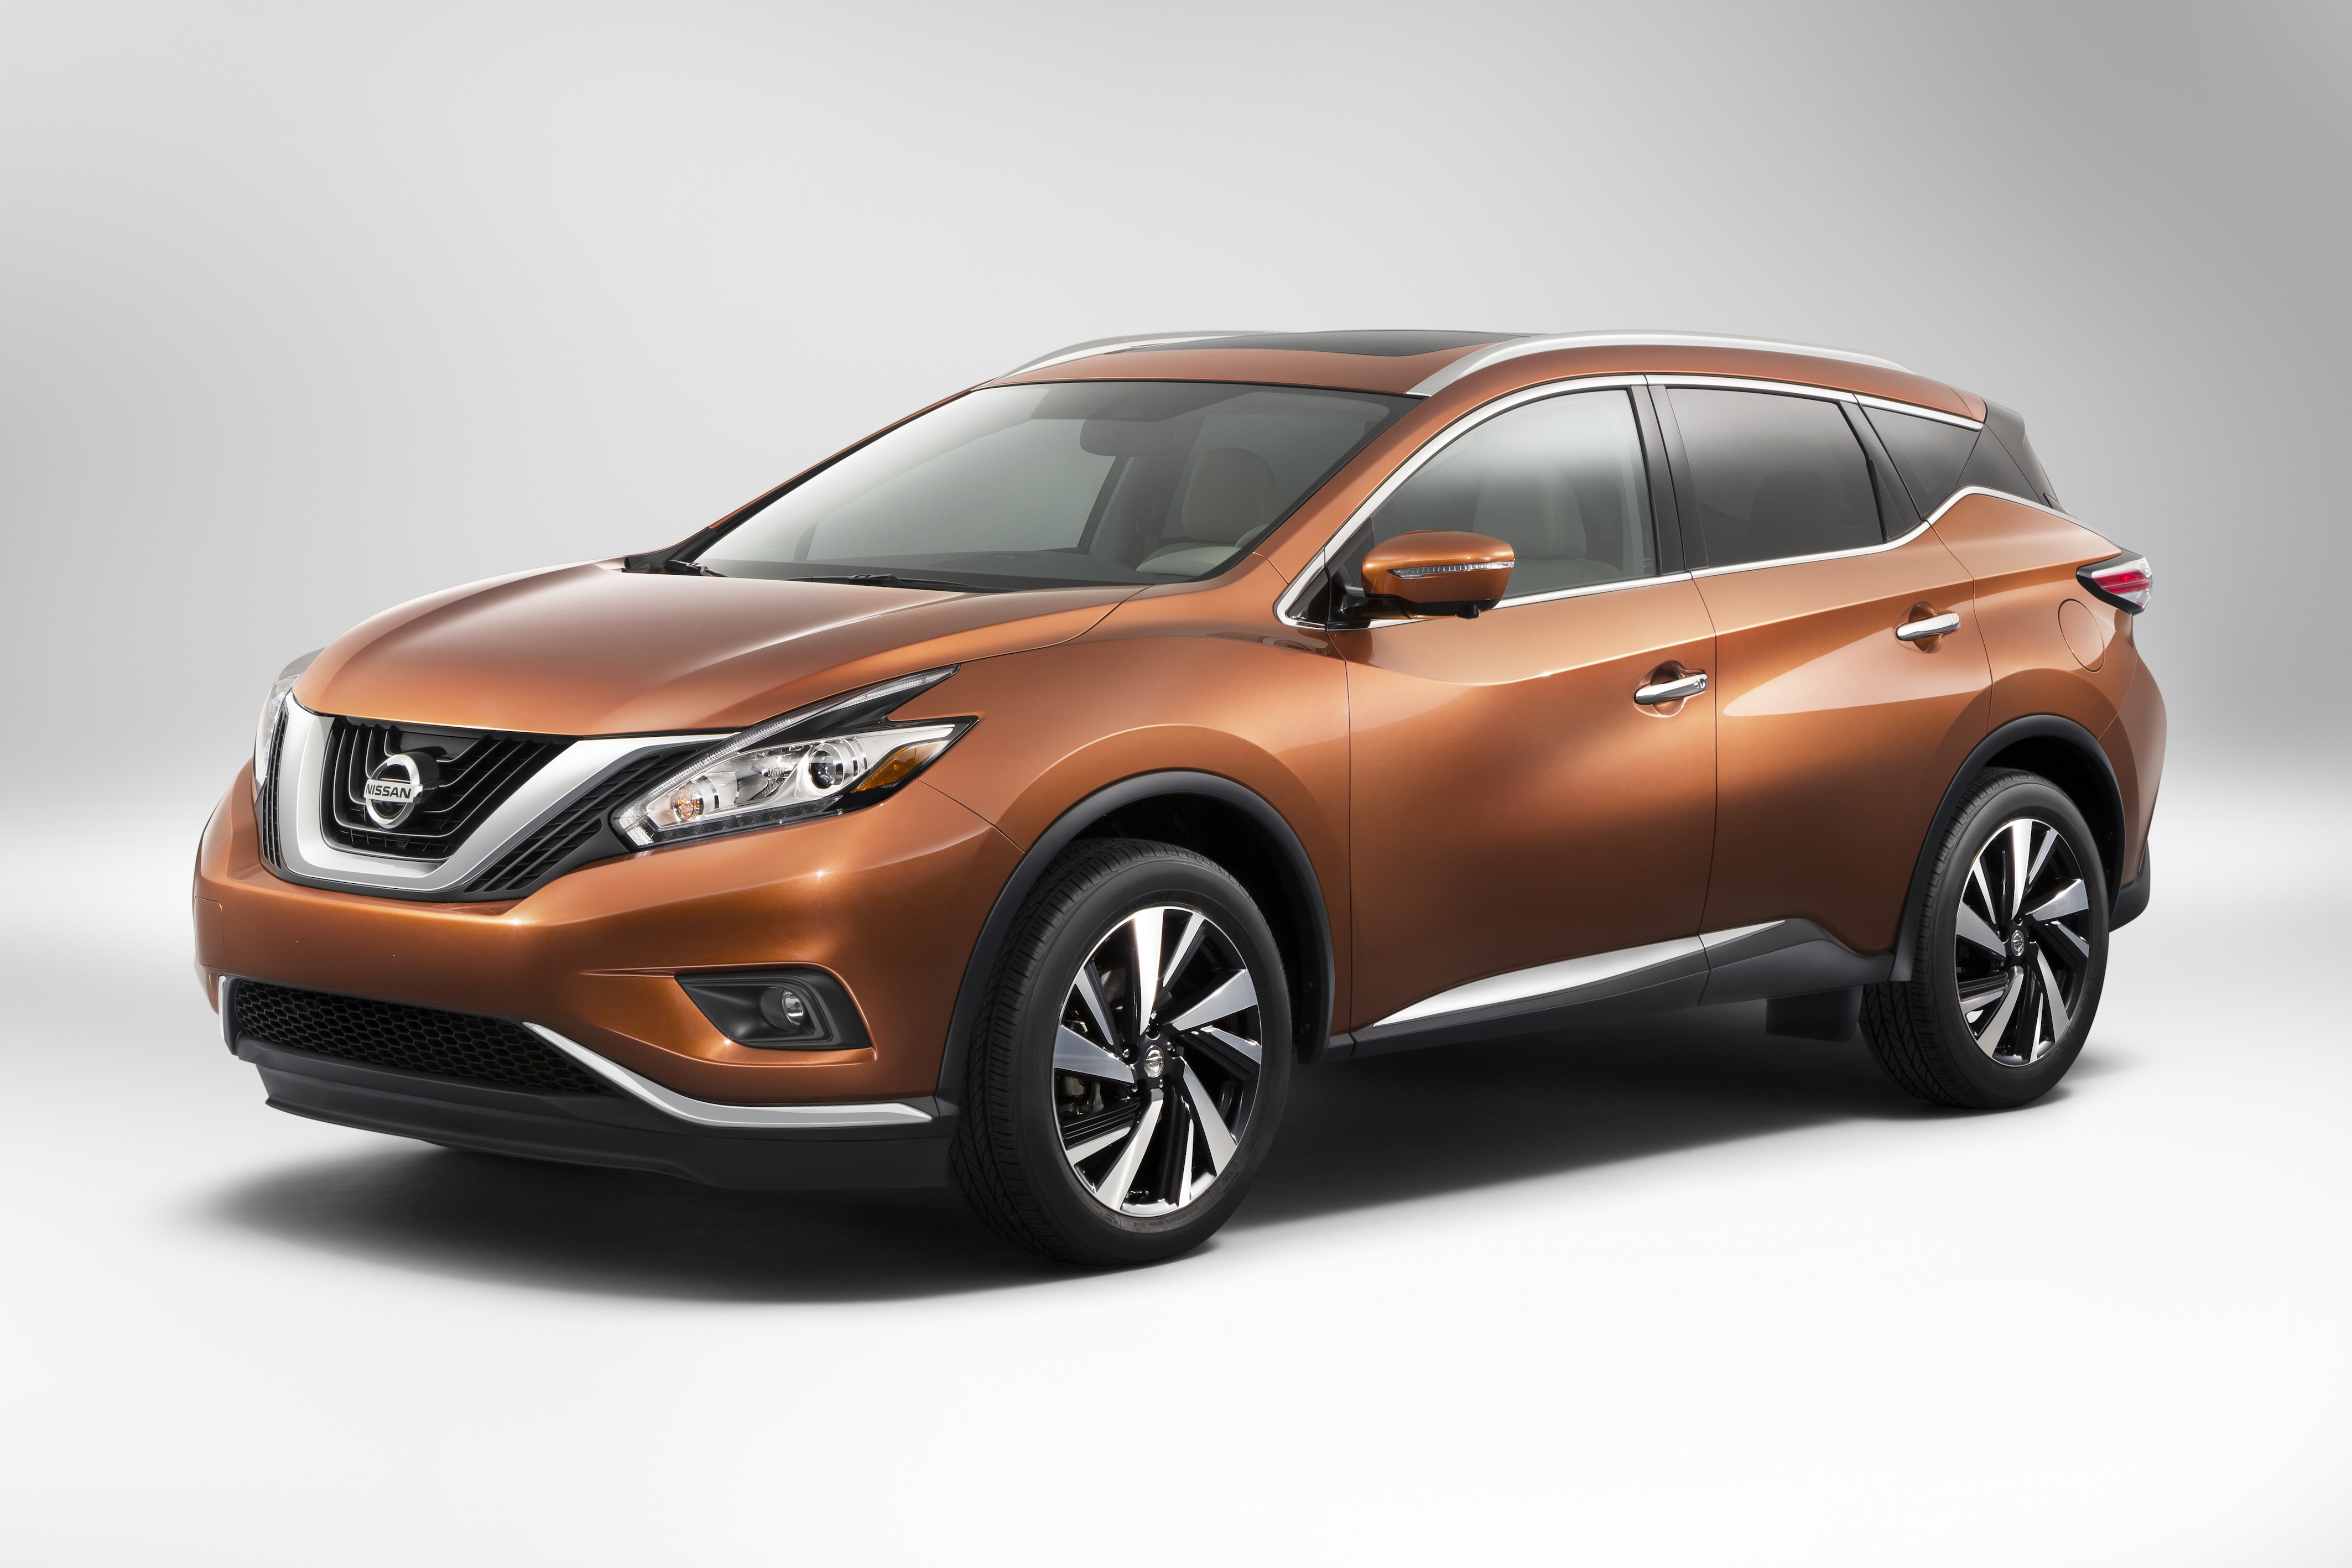 2015 Nissan Murano resets the standard in the midsize crossover segment with breakthrough design, premium interior and purposeful technology. Third generation of Nissan's popular flagship crossover symbolizes Nissan's design-led product and brand renaissance. Murano styling delivers bold Resonance Concept's refined intensity exterior and social lounge interior. Carries forward new Nissan design direction with V-Motion front end, boomerang lights, floating roof treatment and efficient aerodynamics. All-new Murano arrives in Nissan showrooms in late 2014.